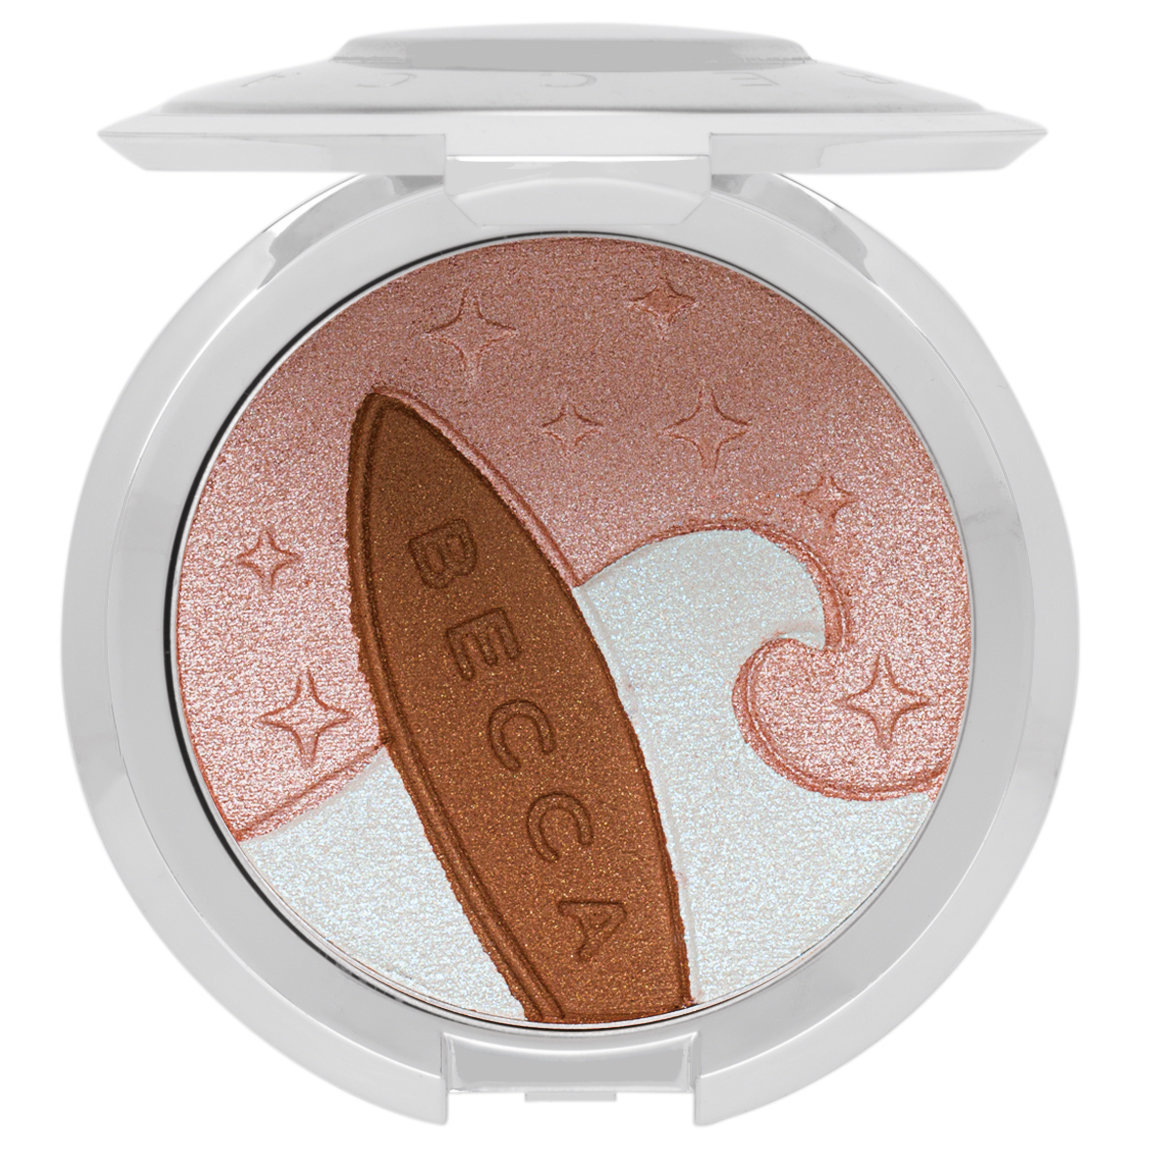 BECCA Cosmetics Shimmering Skin Perfector Pressed Highlighter Australia Ocean Glow alternative view 1 - product swatch.